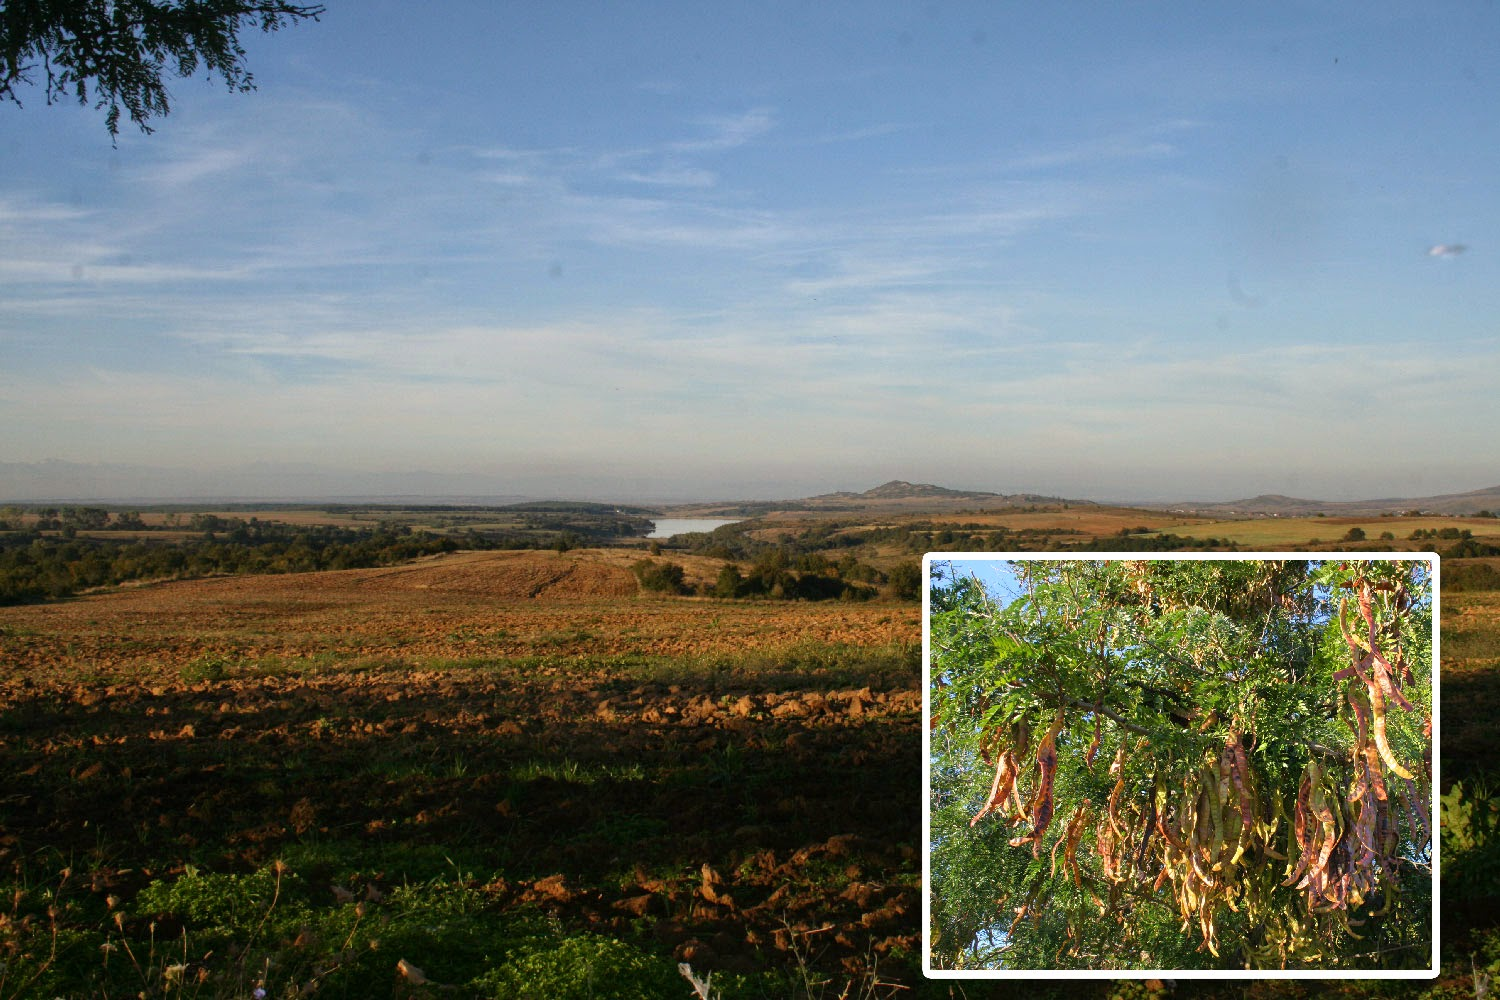 Views across the plain, and an unidentified tree